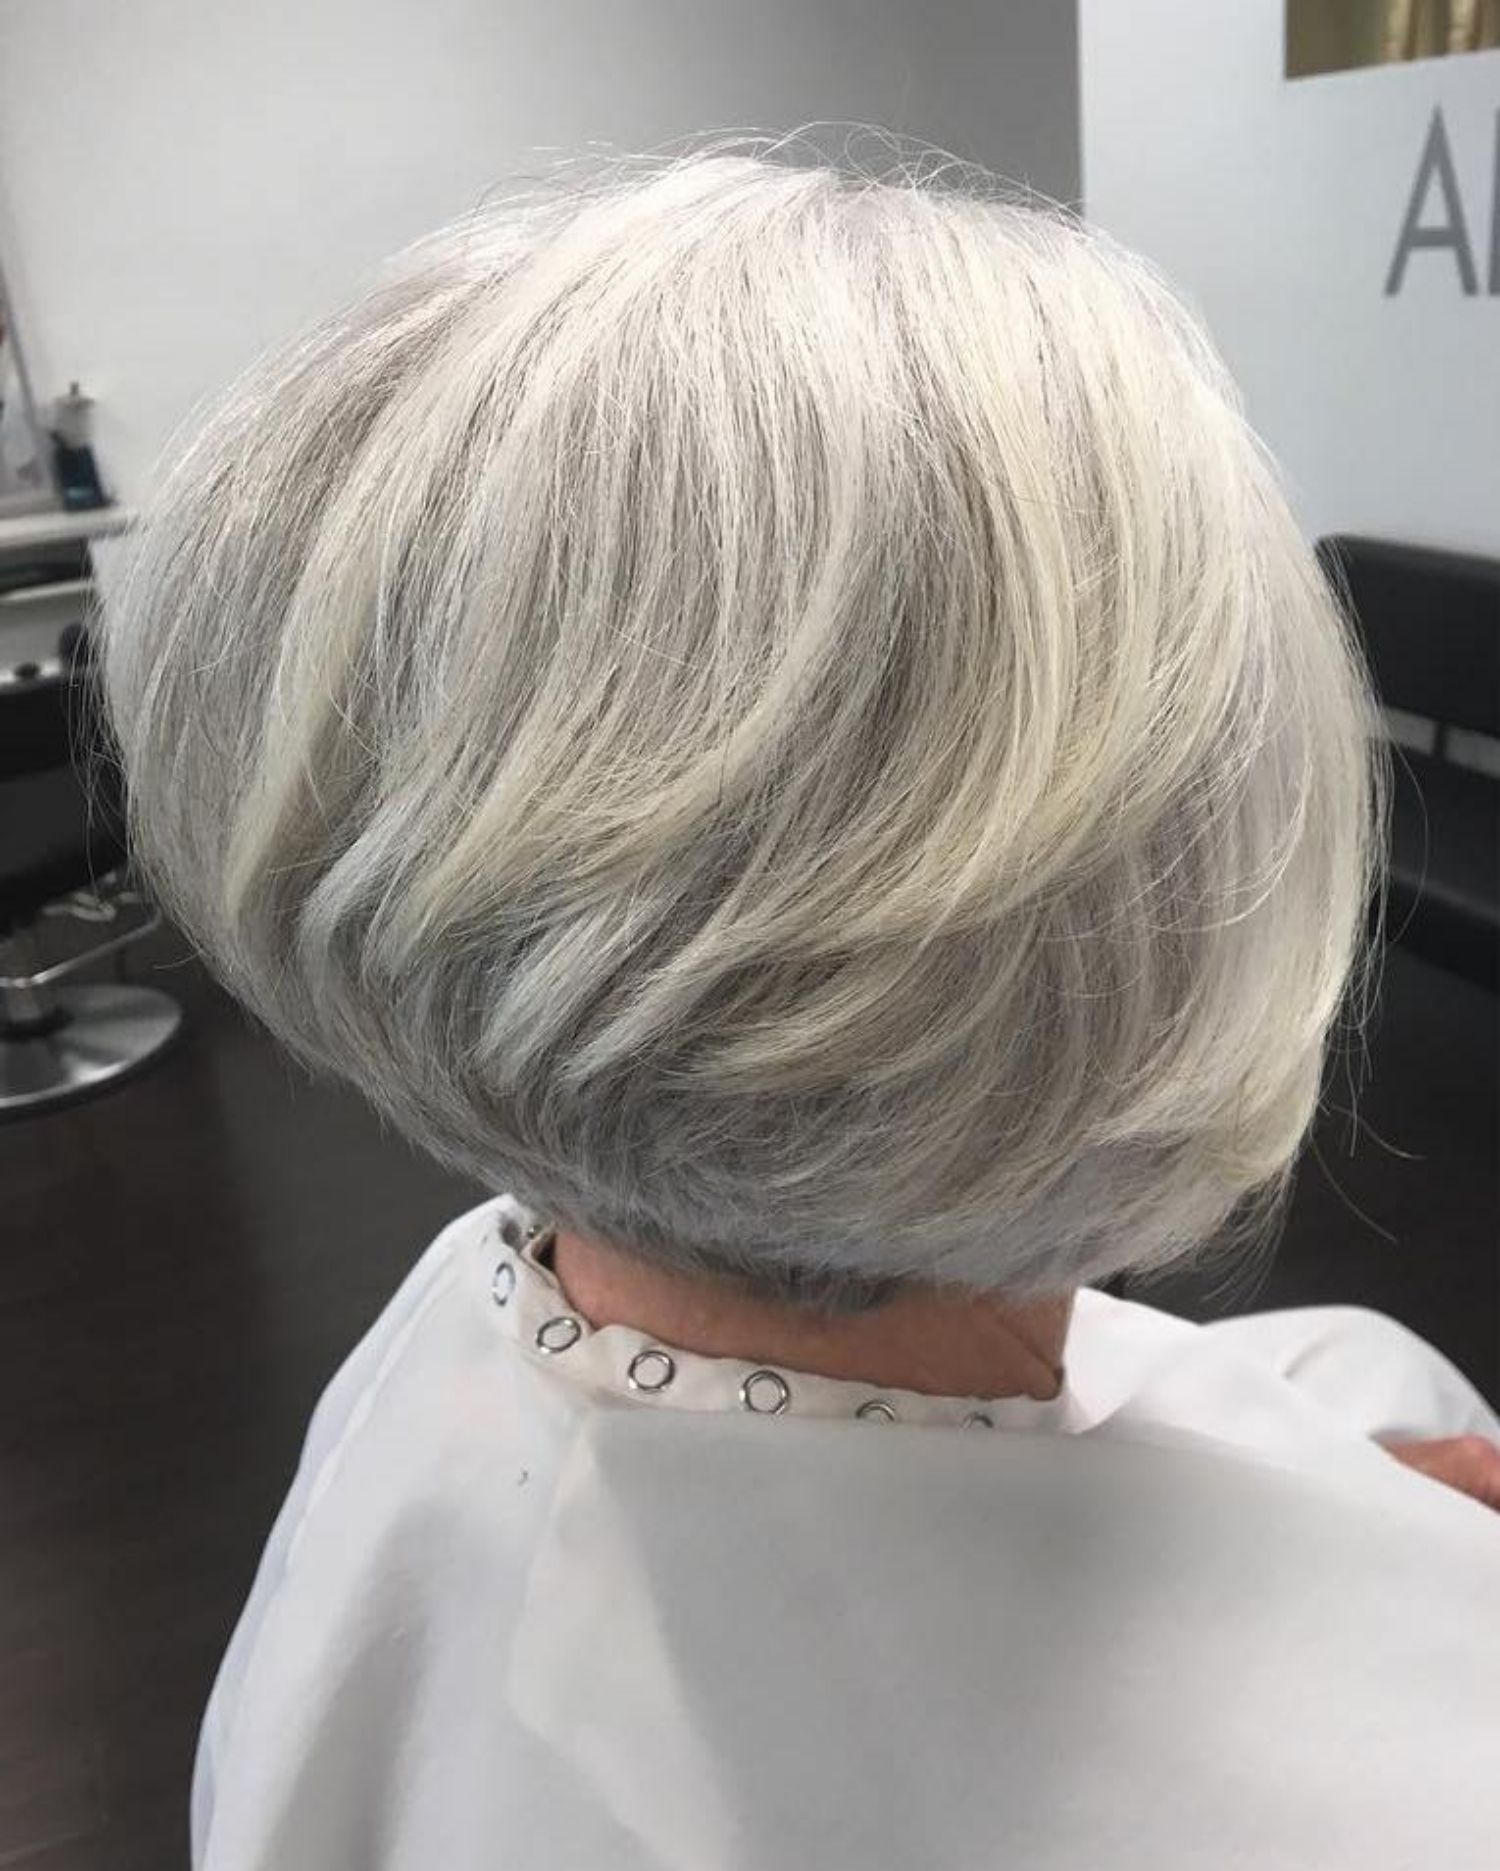 The Best Hairstyles And Haircuts For Women Over 70 In 2020 Thick Hair Styles Cool Hairstyles Short Hair Styles